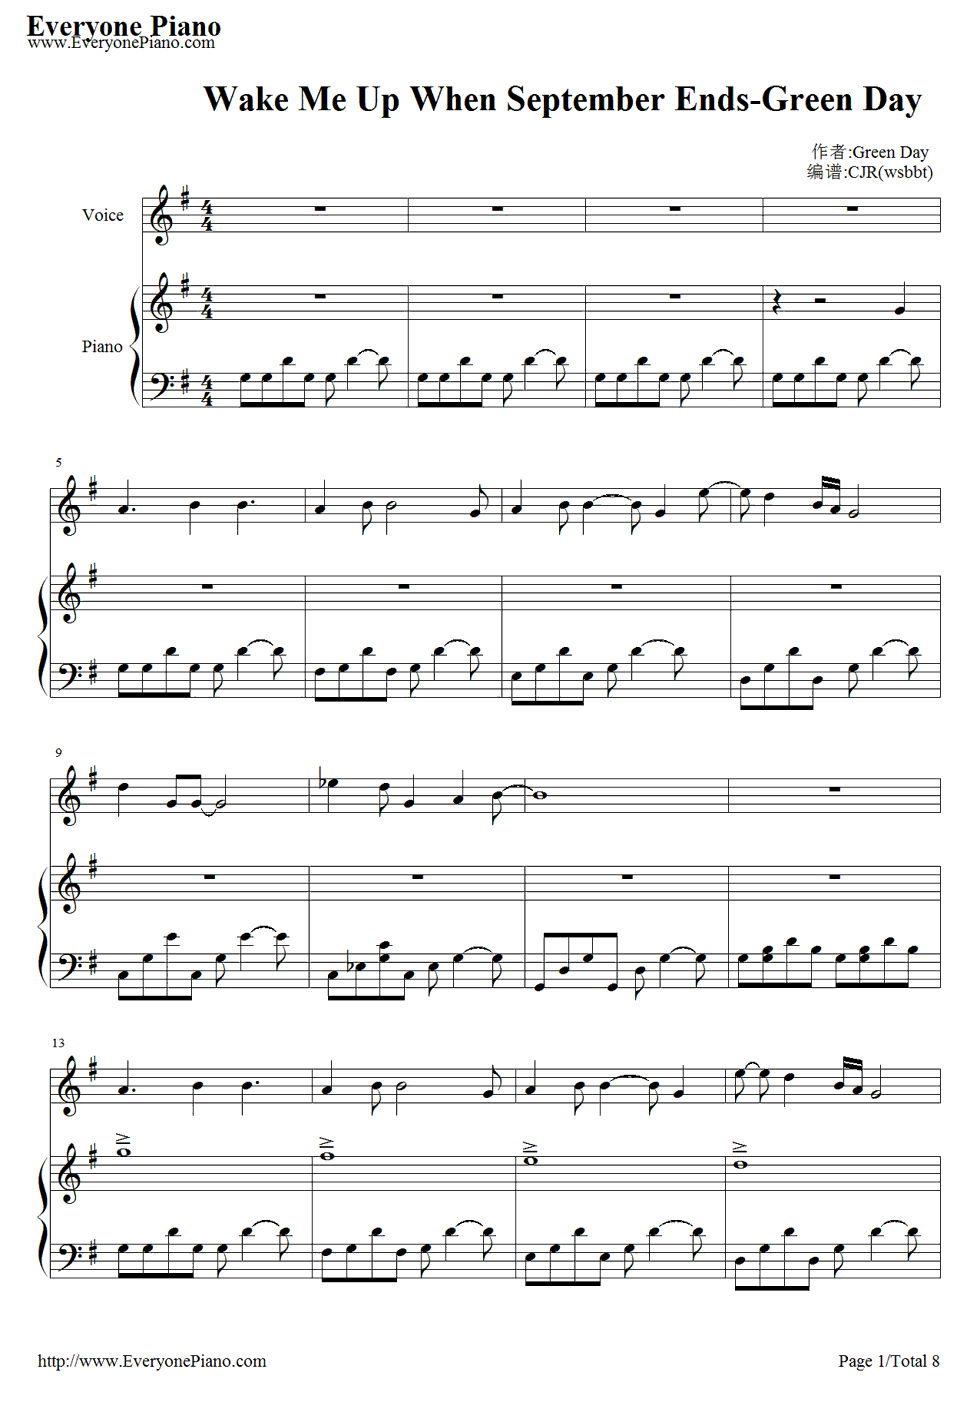 Wake Me Up When September Ends Chords Wake Me Up When September Ends Green Day Free Piano Sheet Music